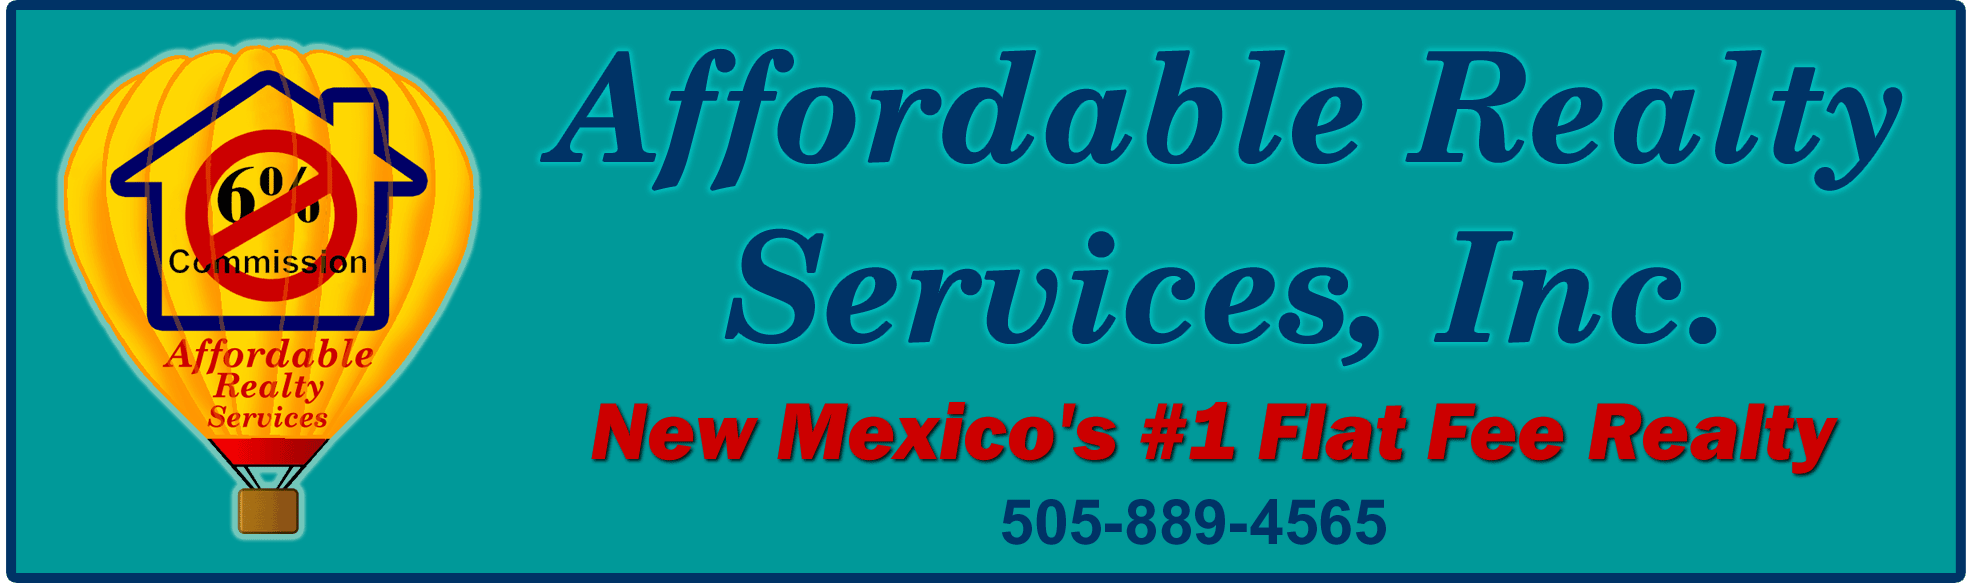 Affordable Realty Services, Inc.